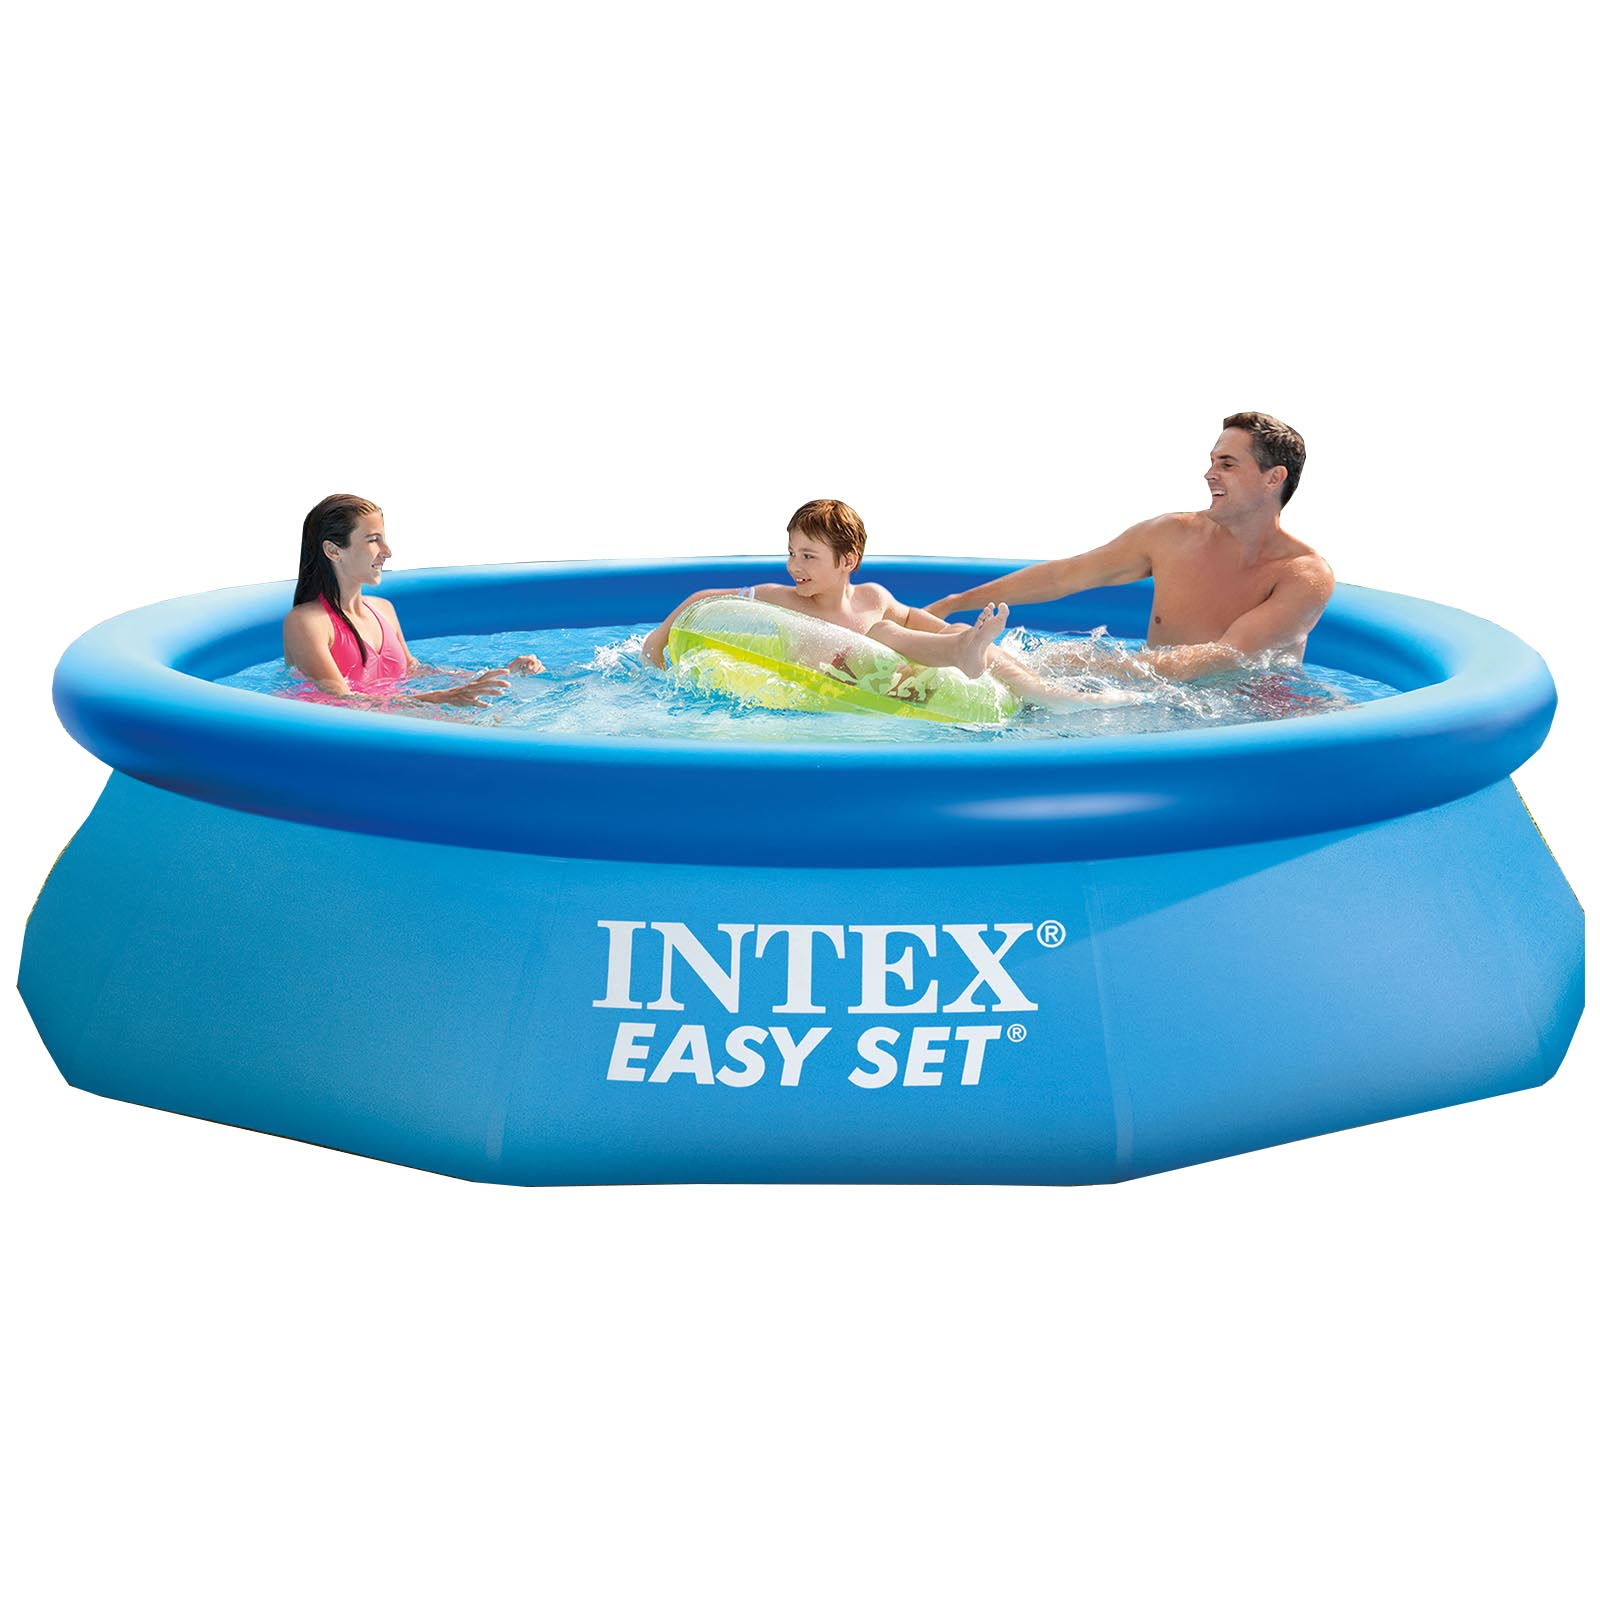 Intex 10 39 x 30 easy set above ground inflatable family swimming pool w o pump ebay Inflatable quick set swimming pool